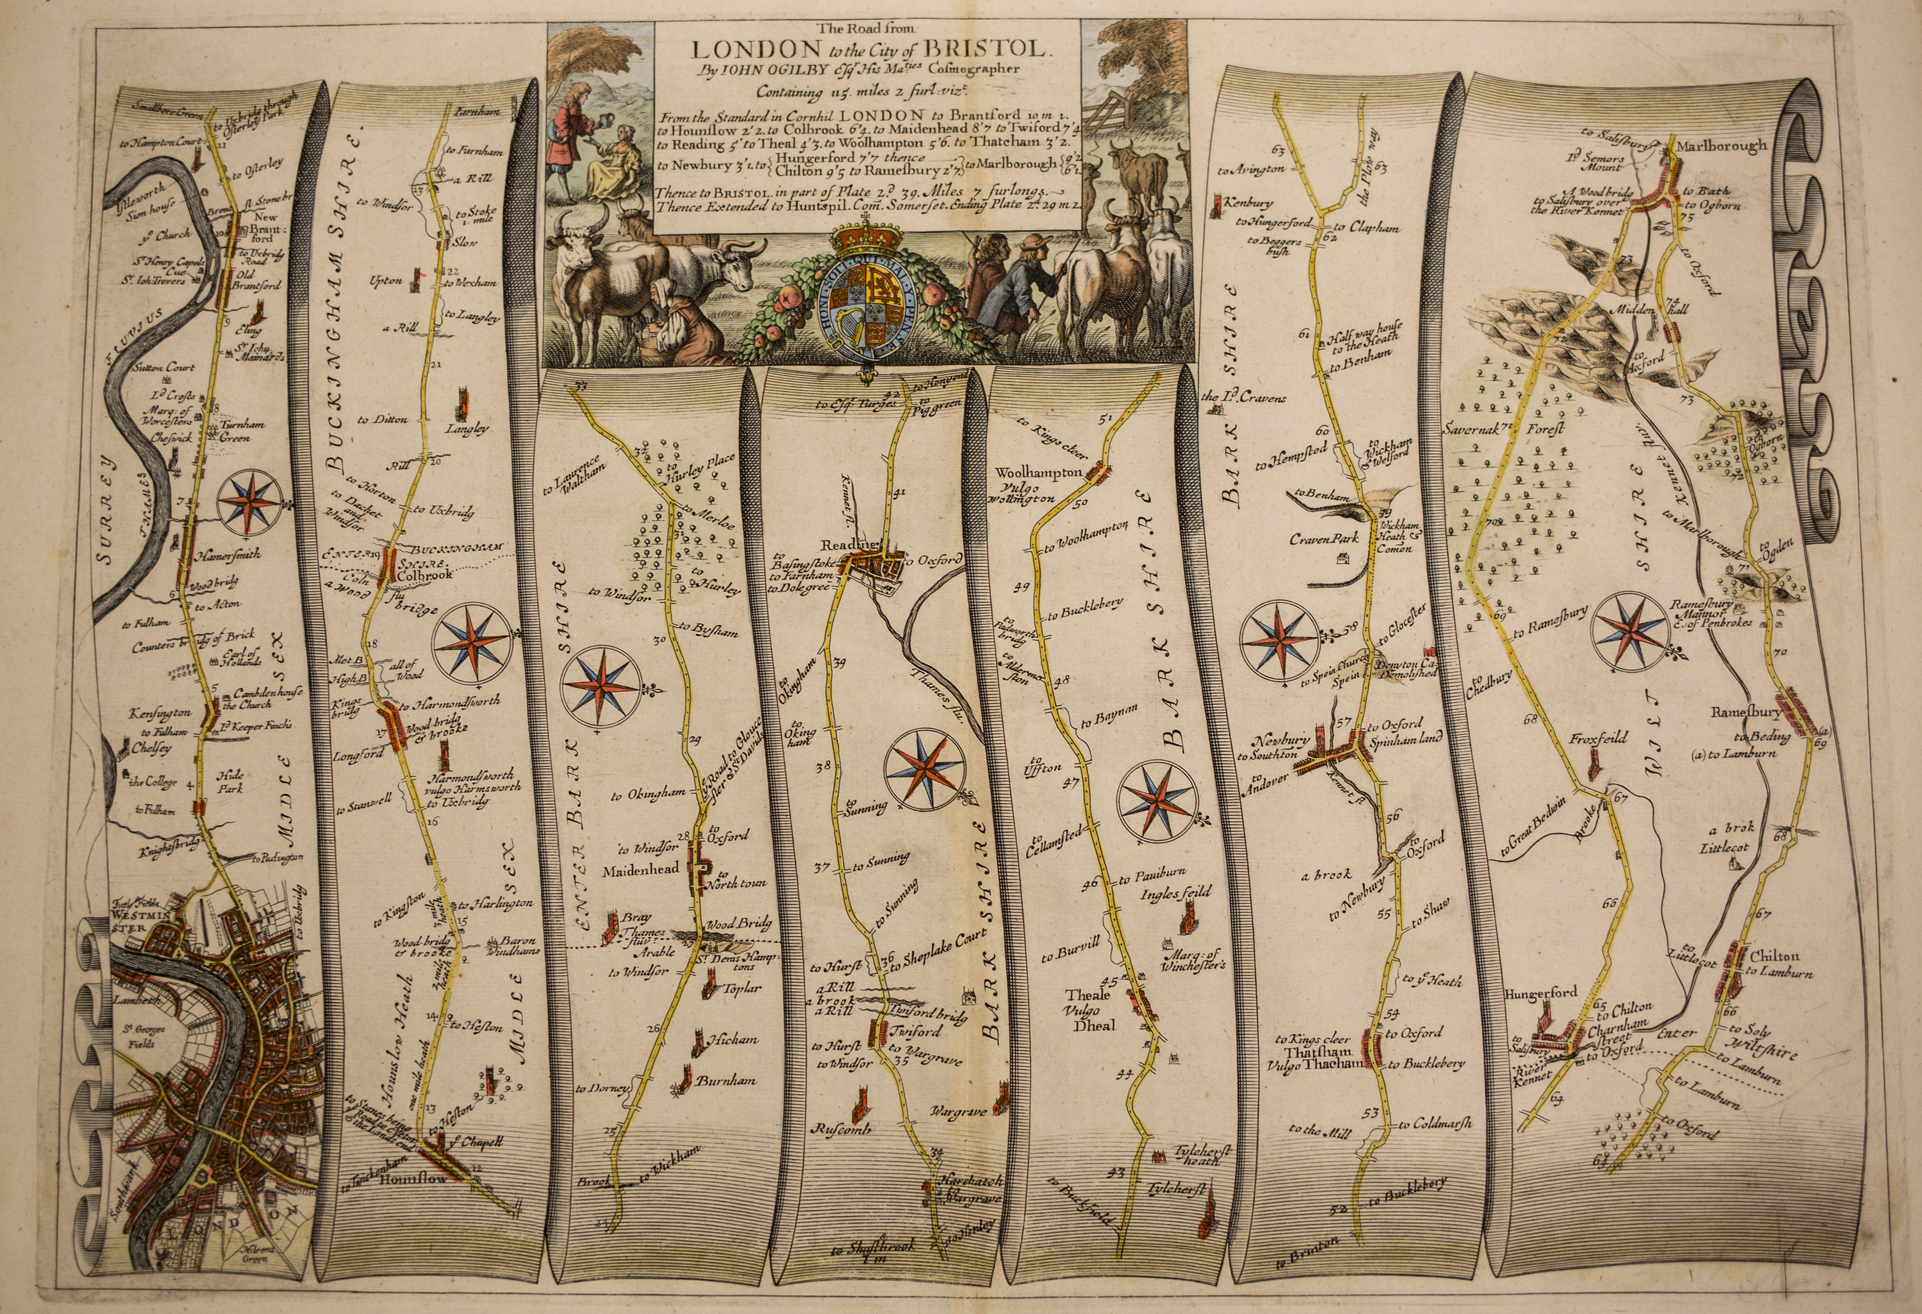 Map Over London.Vintage Maps Books And More In Uw Libraries Special Collections